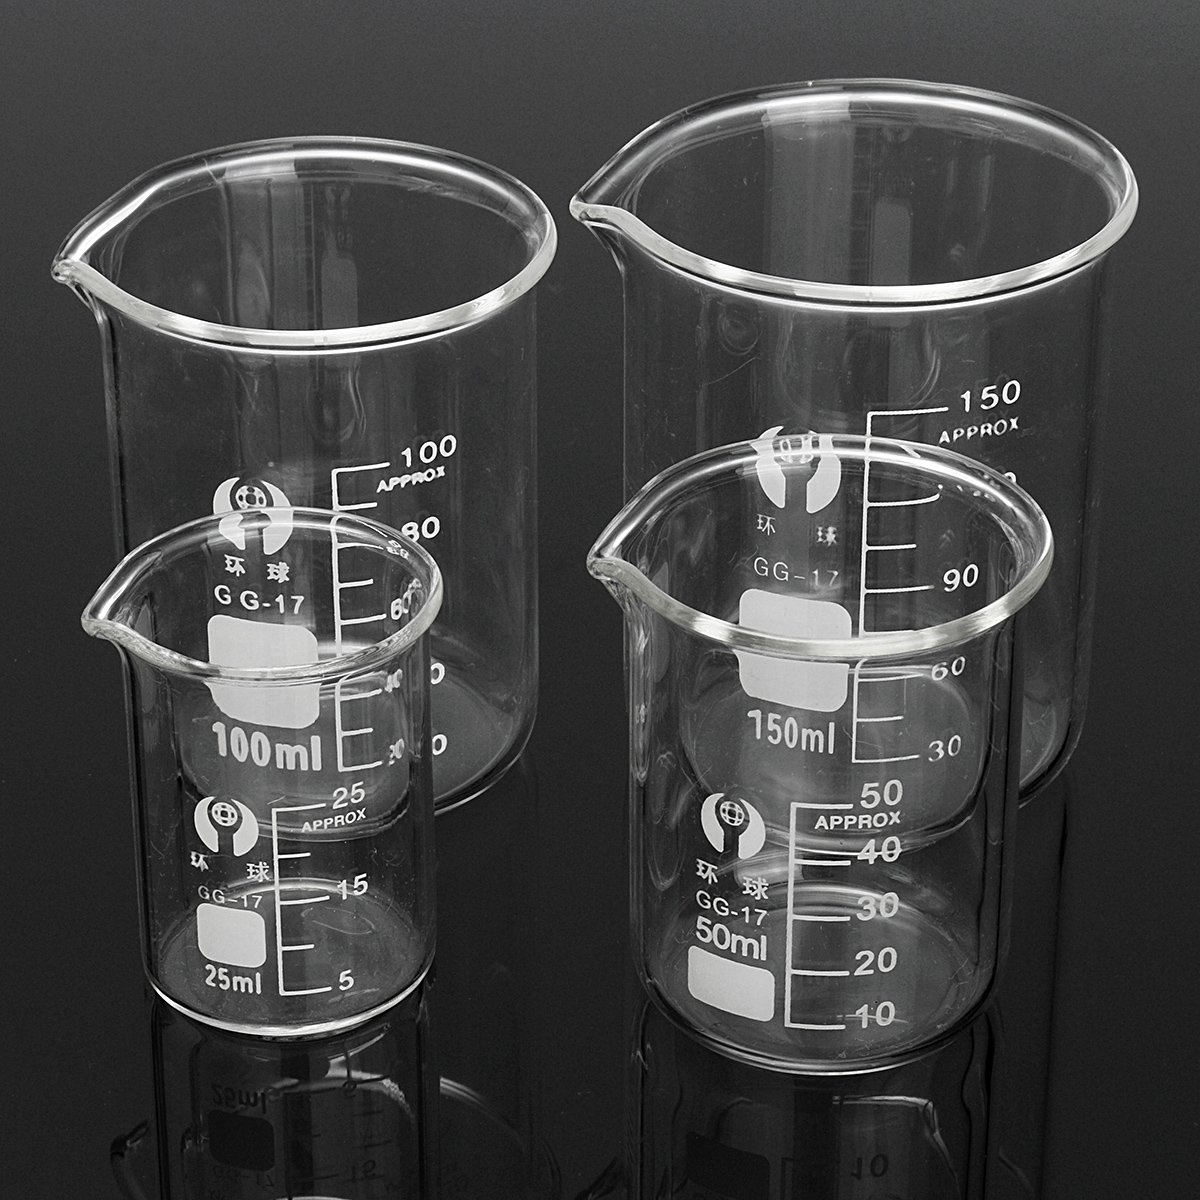 DIY 4Pcs Borosilicate Glass Beaker Volumetric Glassware For Laboratory